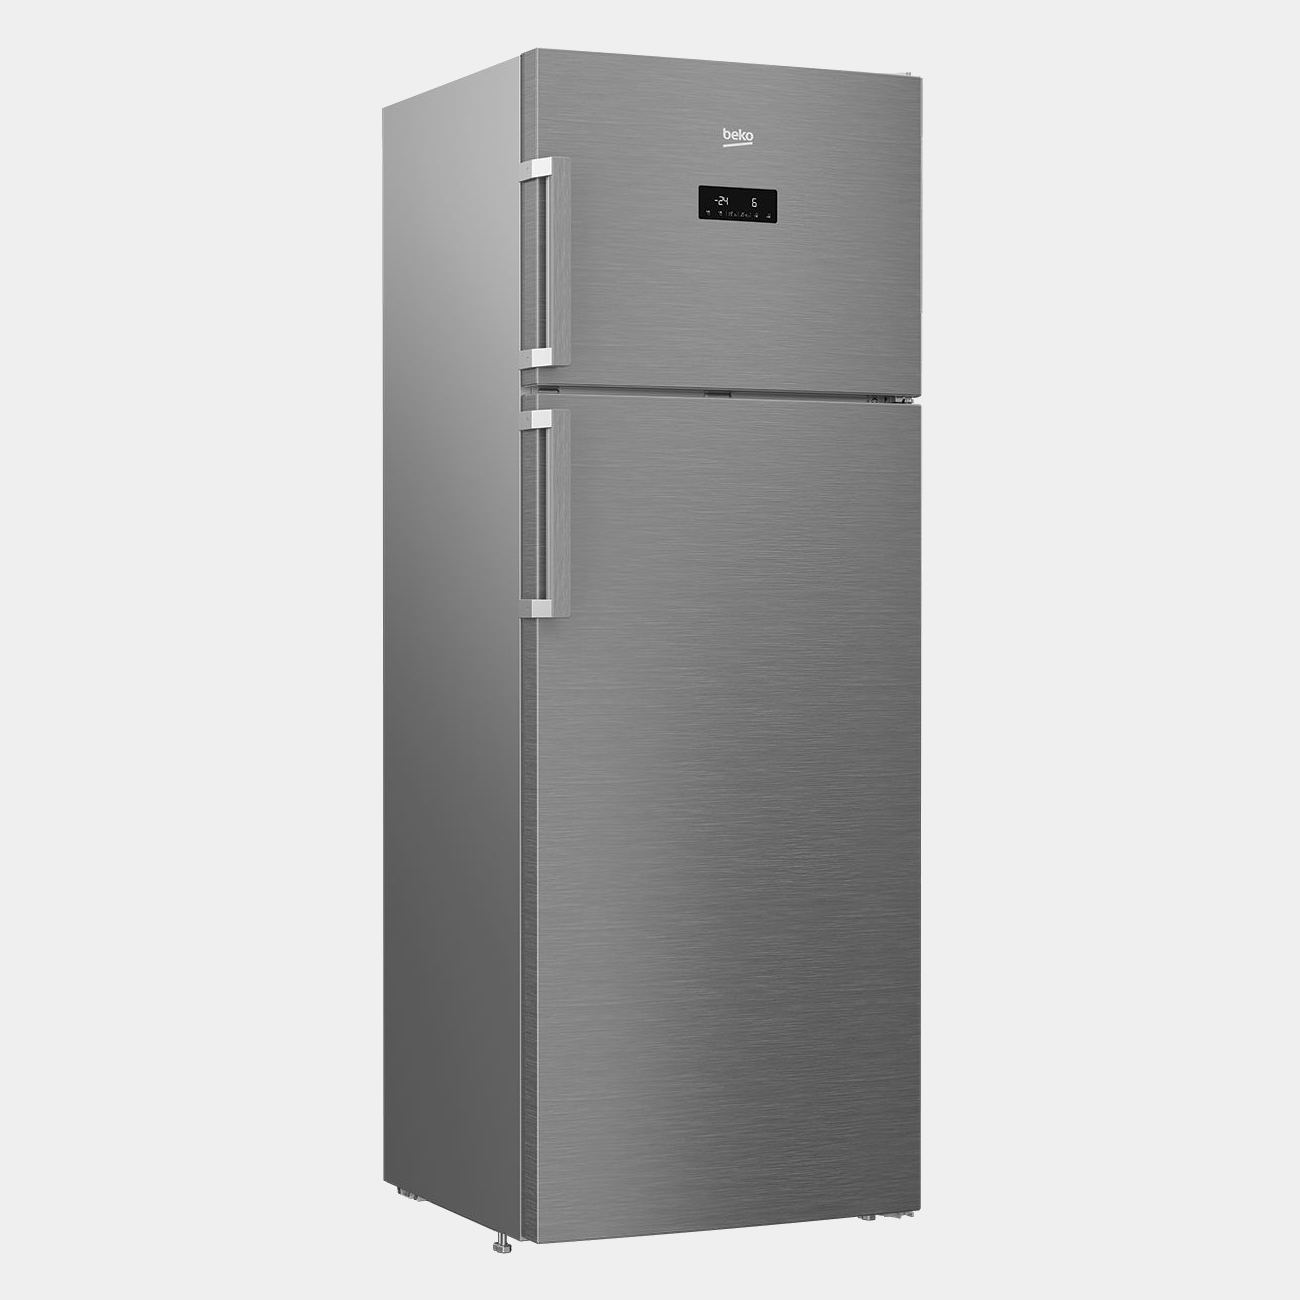 beko rdne535e31zx frigorifico inox 193x70 no frost a. Black Bedroom Furniture Sets. Home Design Ideas